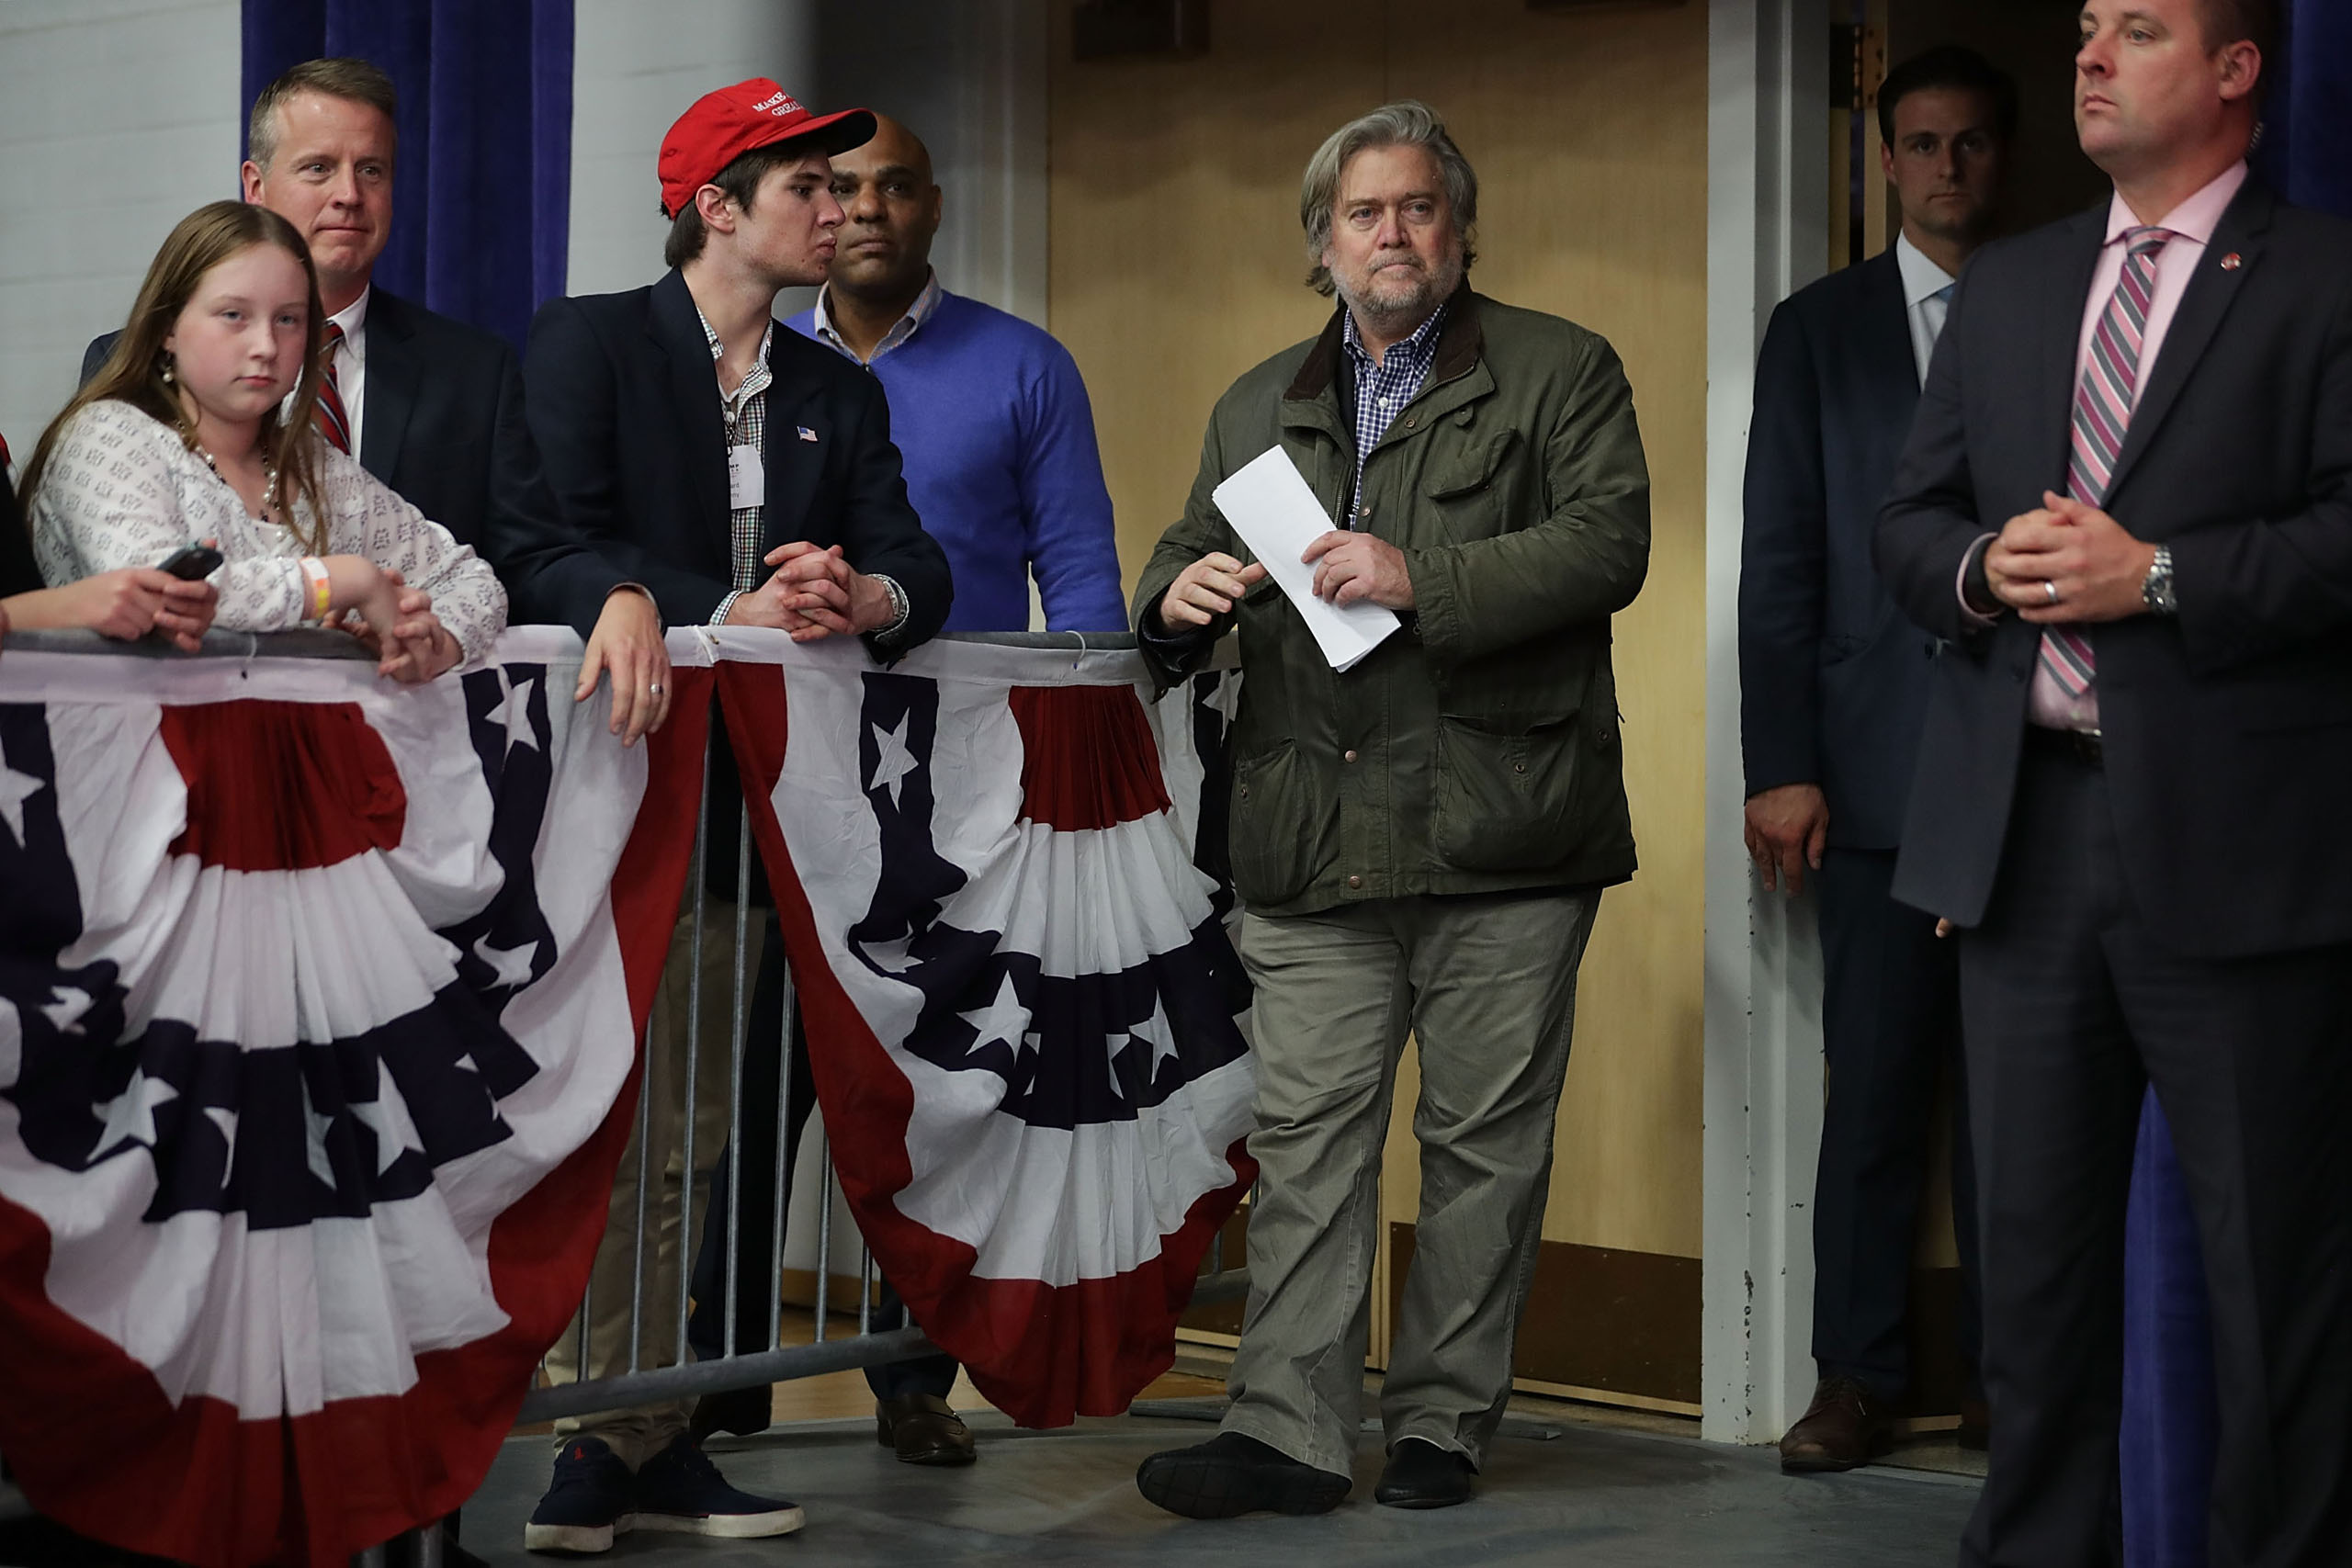 Republican presidential nominee Donald Trump's campaign CEO Steve Bannon attends a campaign rally in Eau Claire, Wis., Nov. 1, 2016.